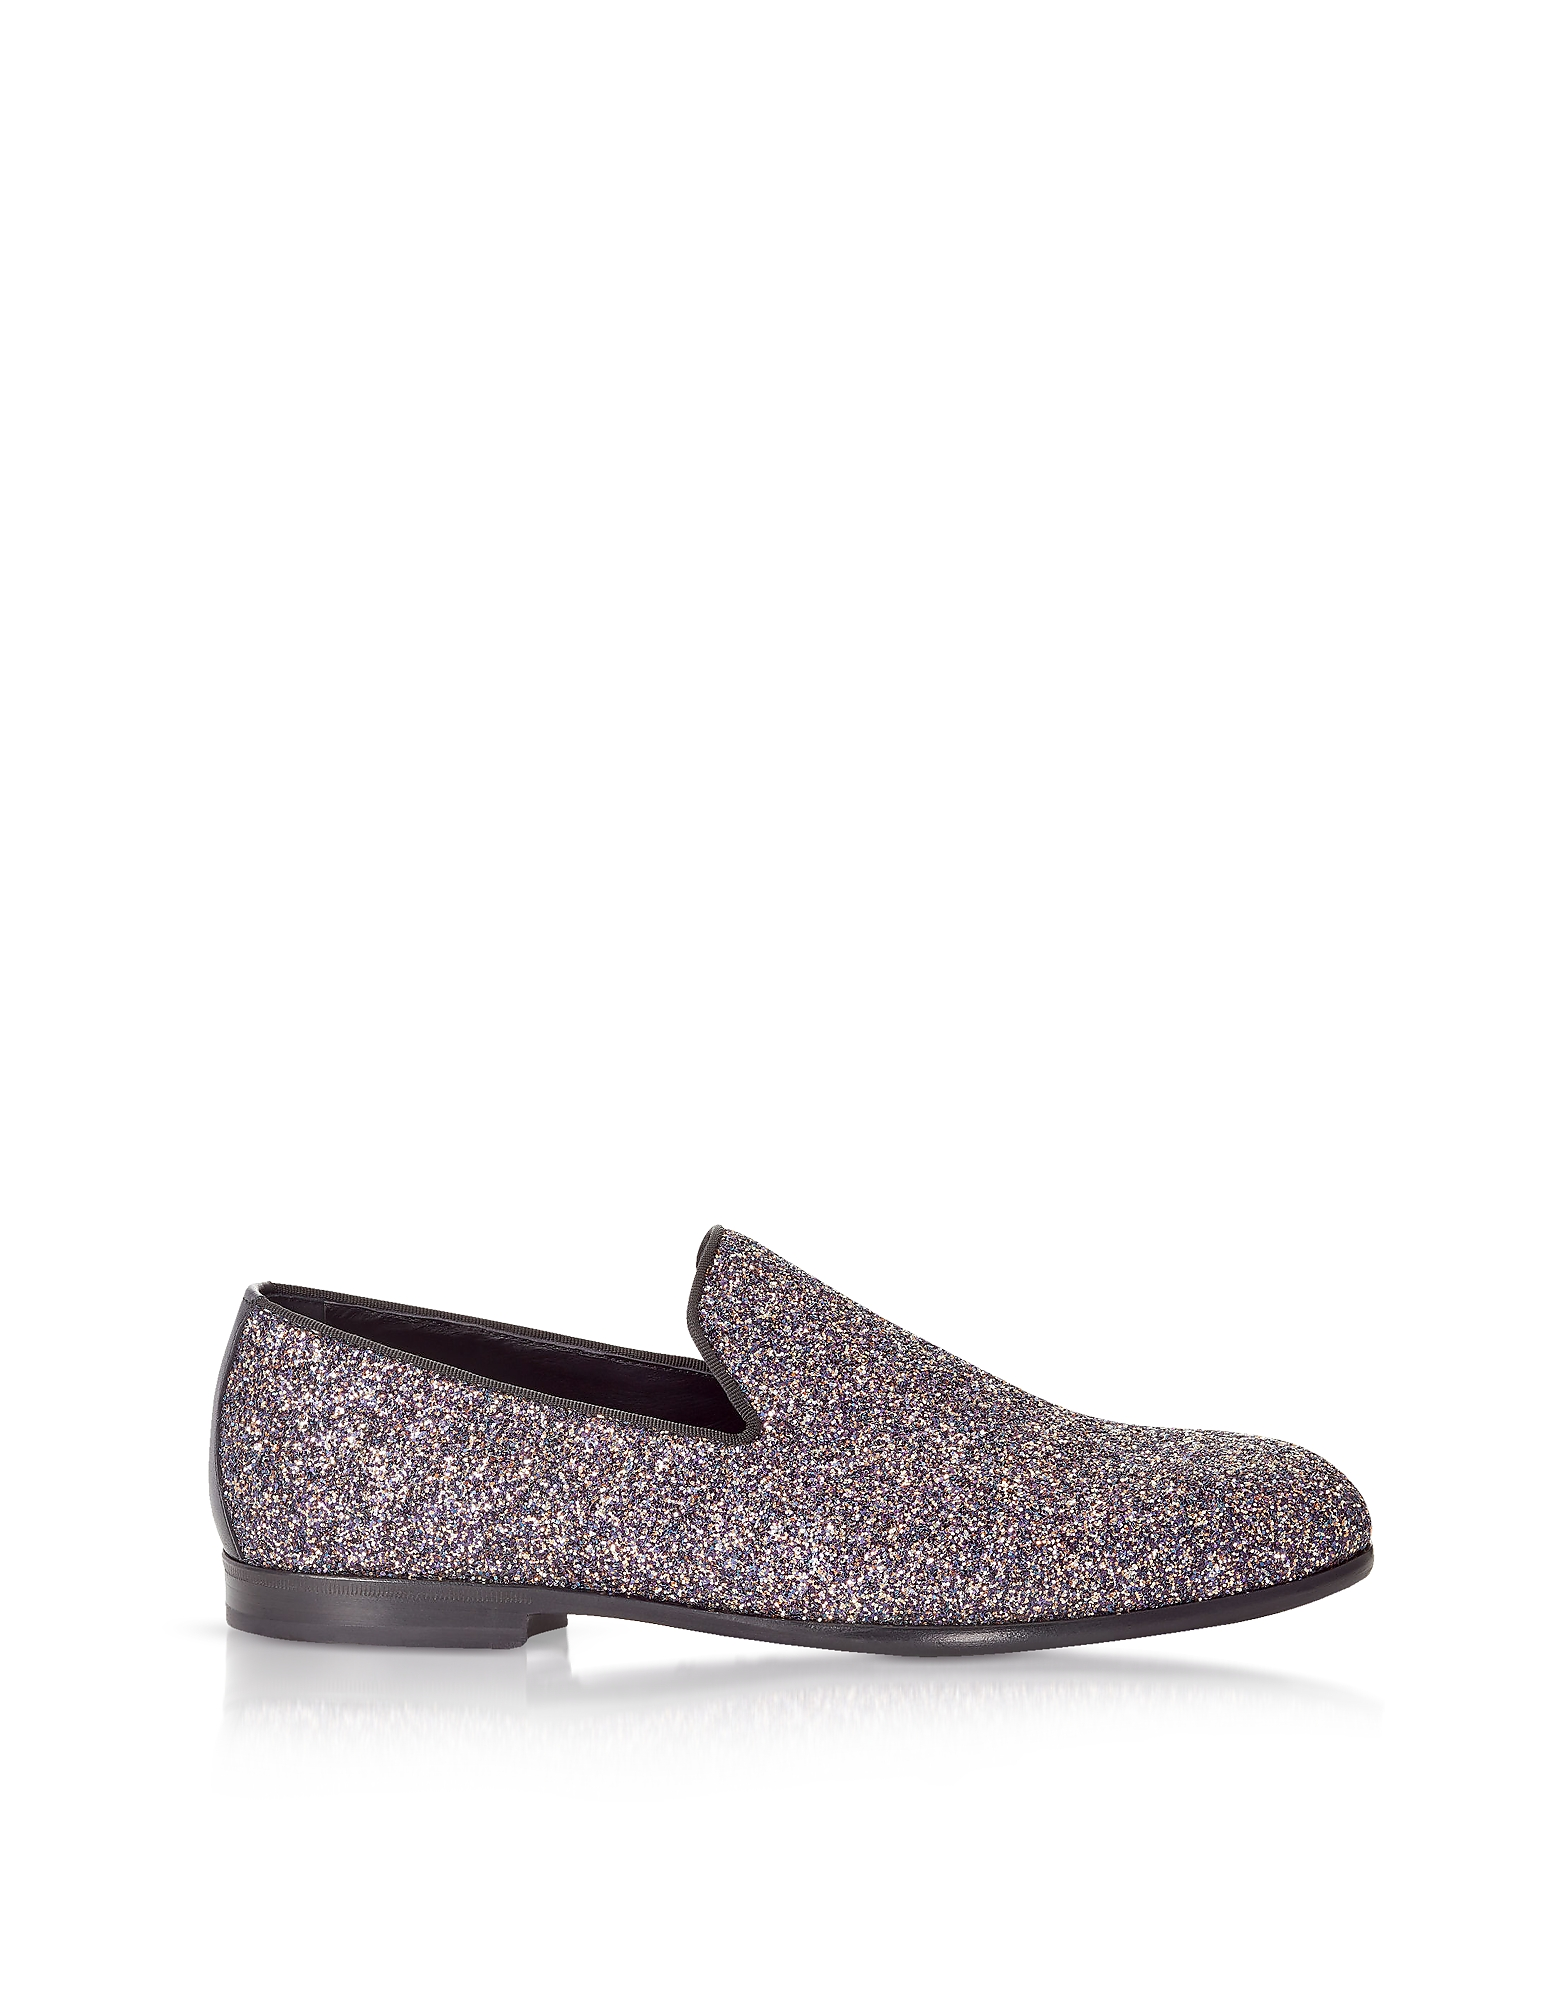 Jimmy chooDesigner Shoes, Marlo Twilight Glitzy Glitter Fabric Slippers